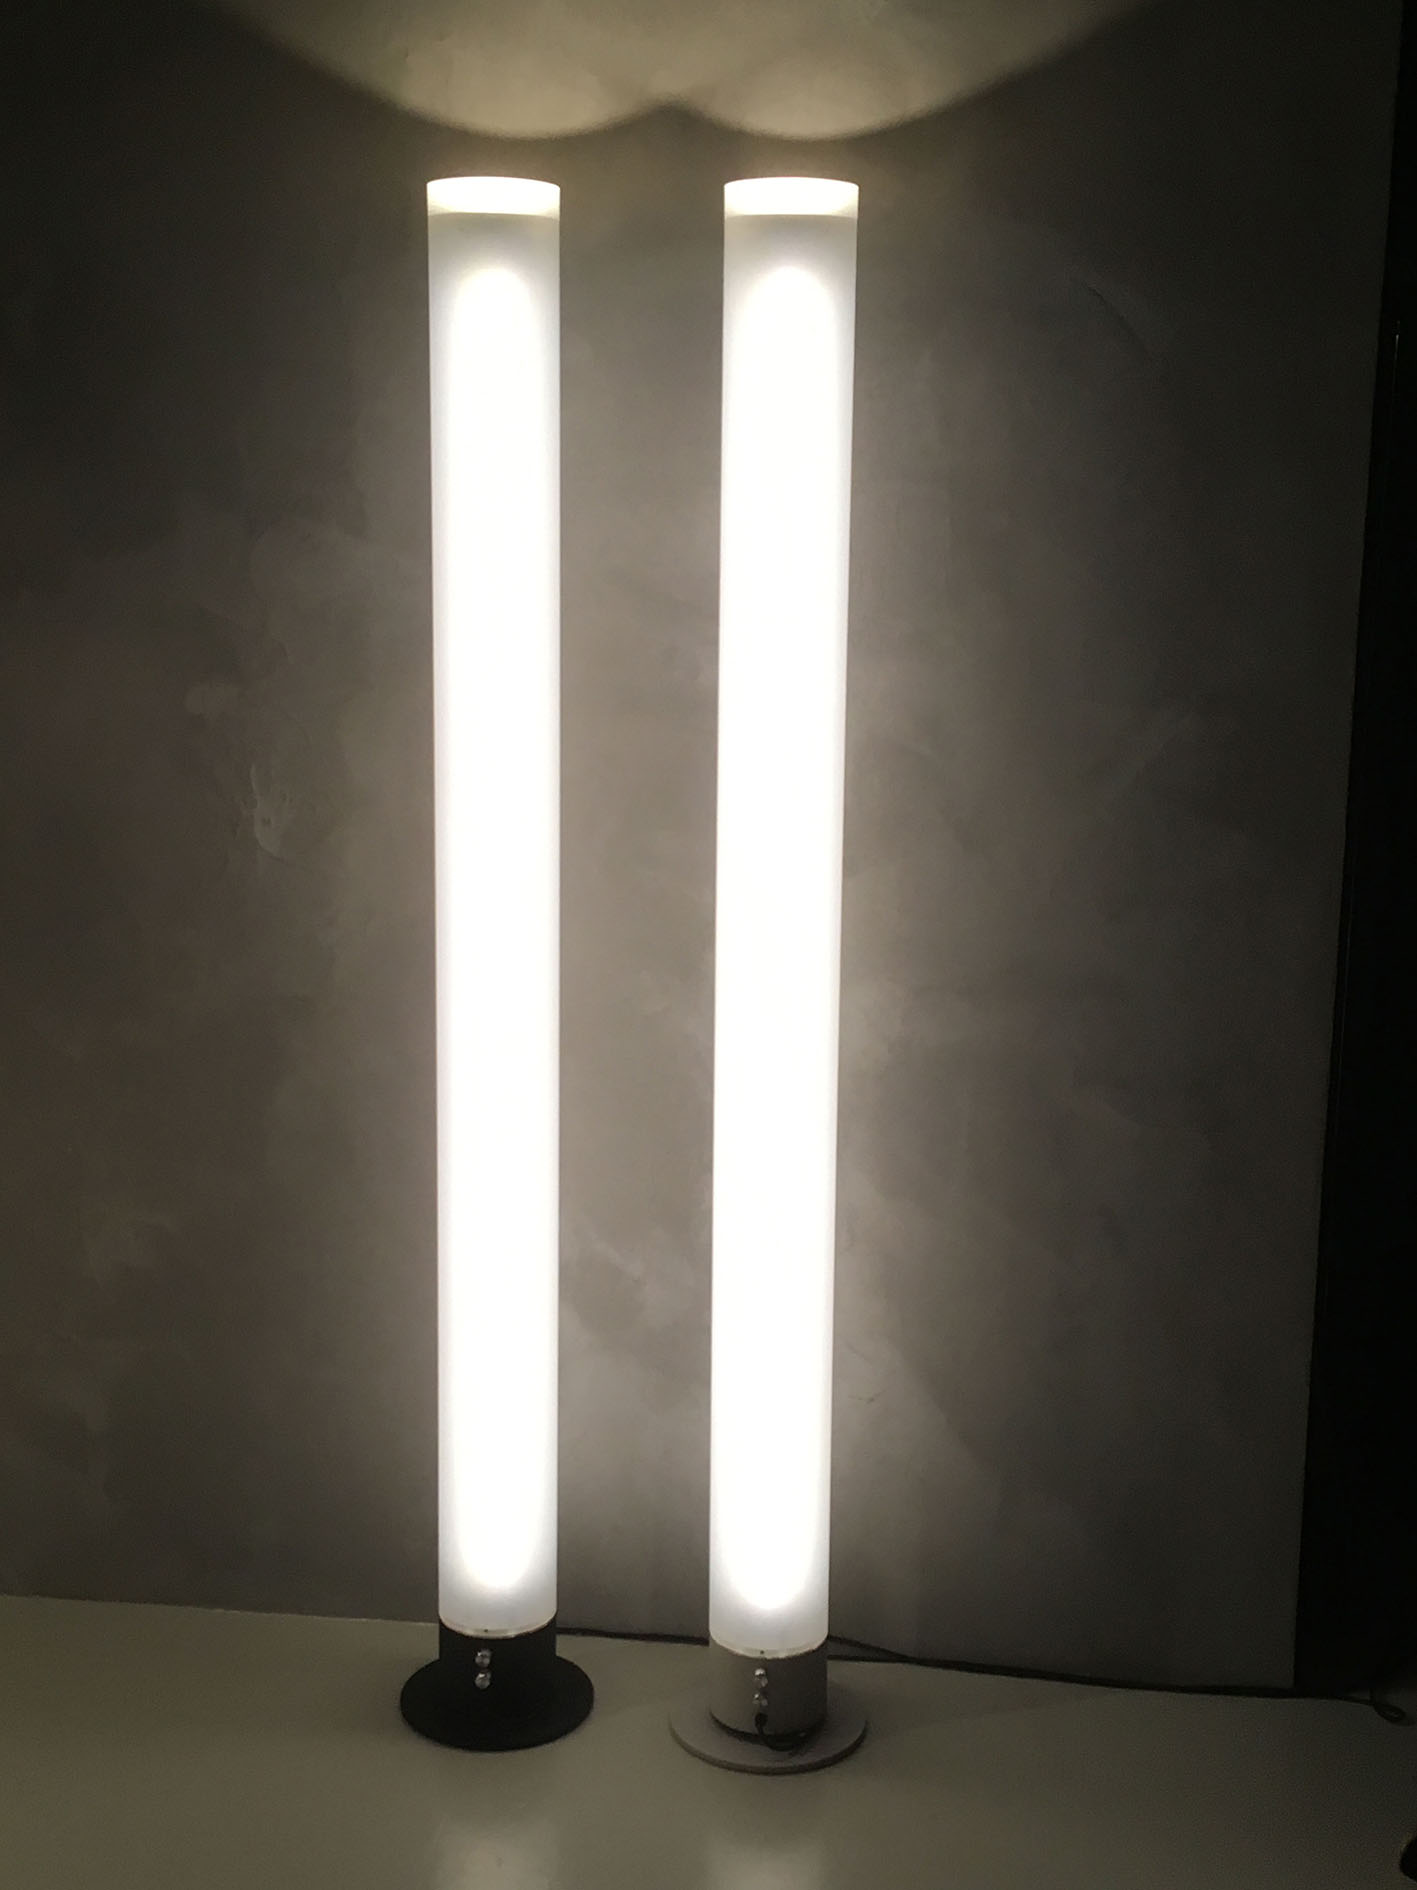 Design lamp LED